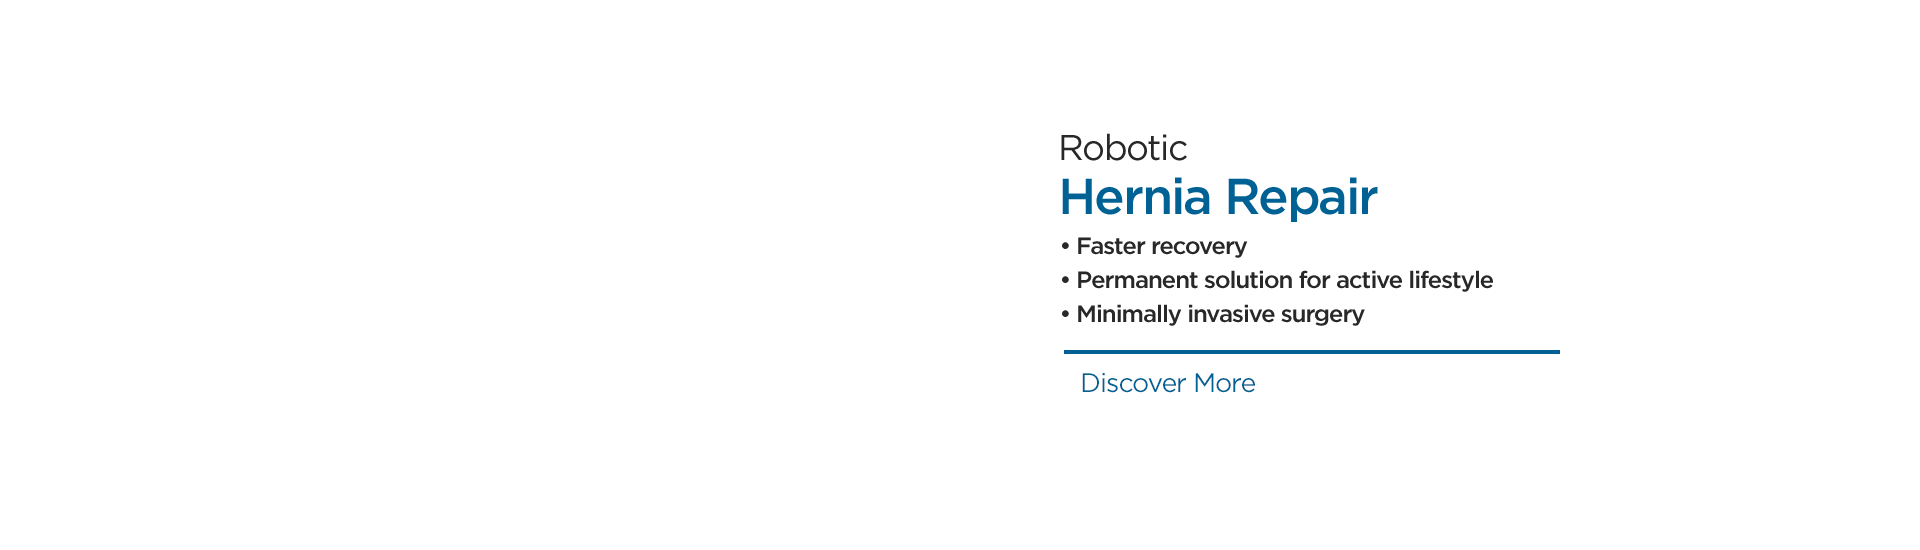 Robotic Hernia Surgery, What Makes Robotic Hernia Surgery So Effective?